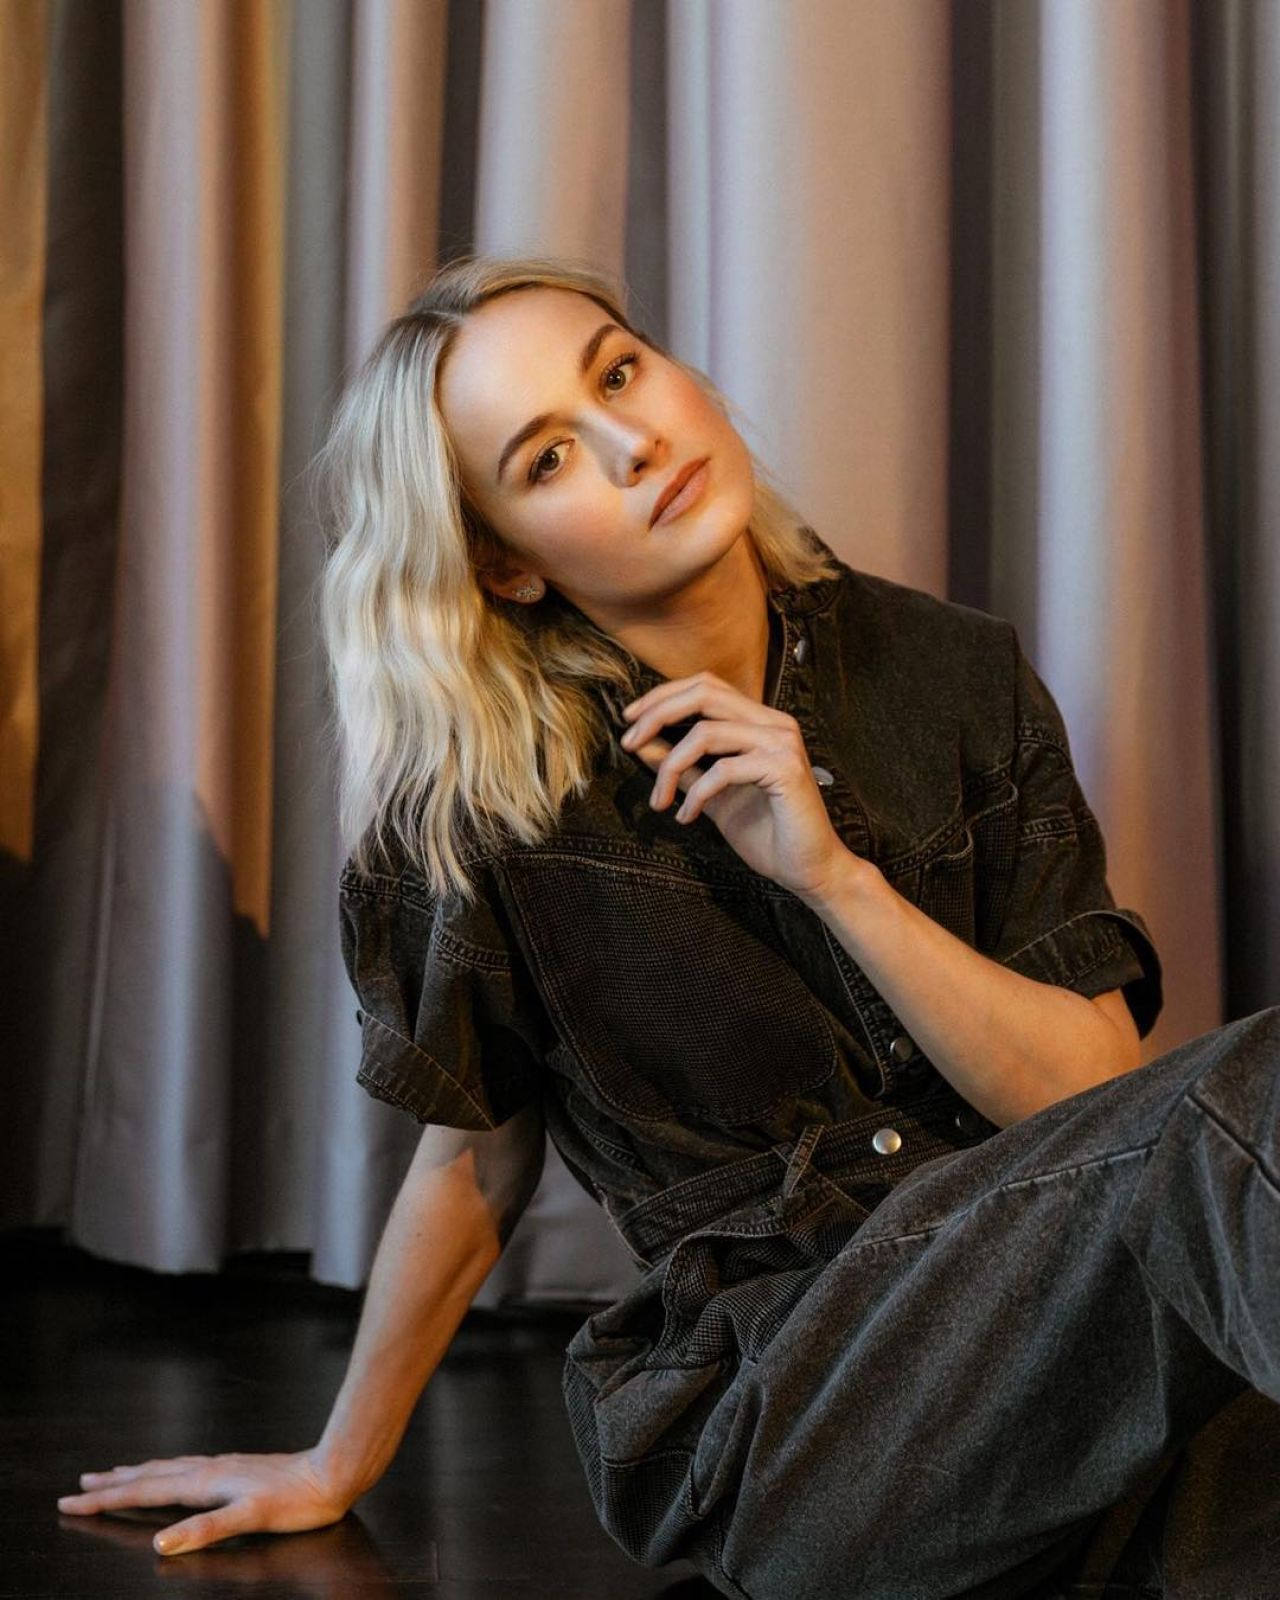 Brie Larson very nice Who What Wear photo shoot